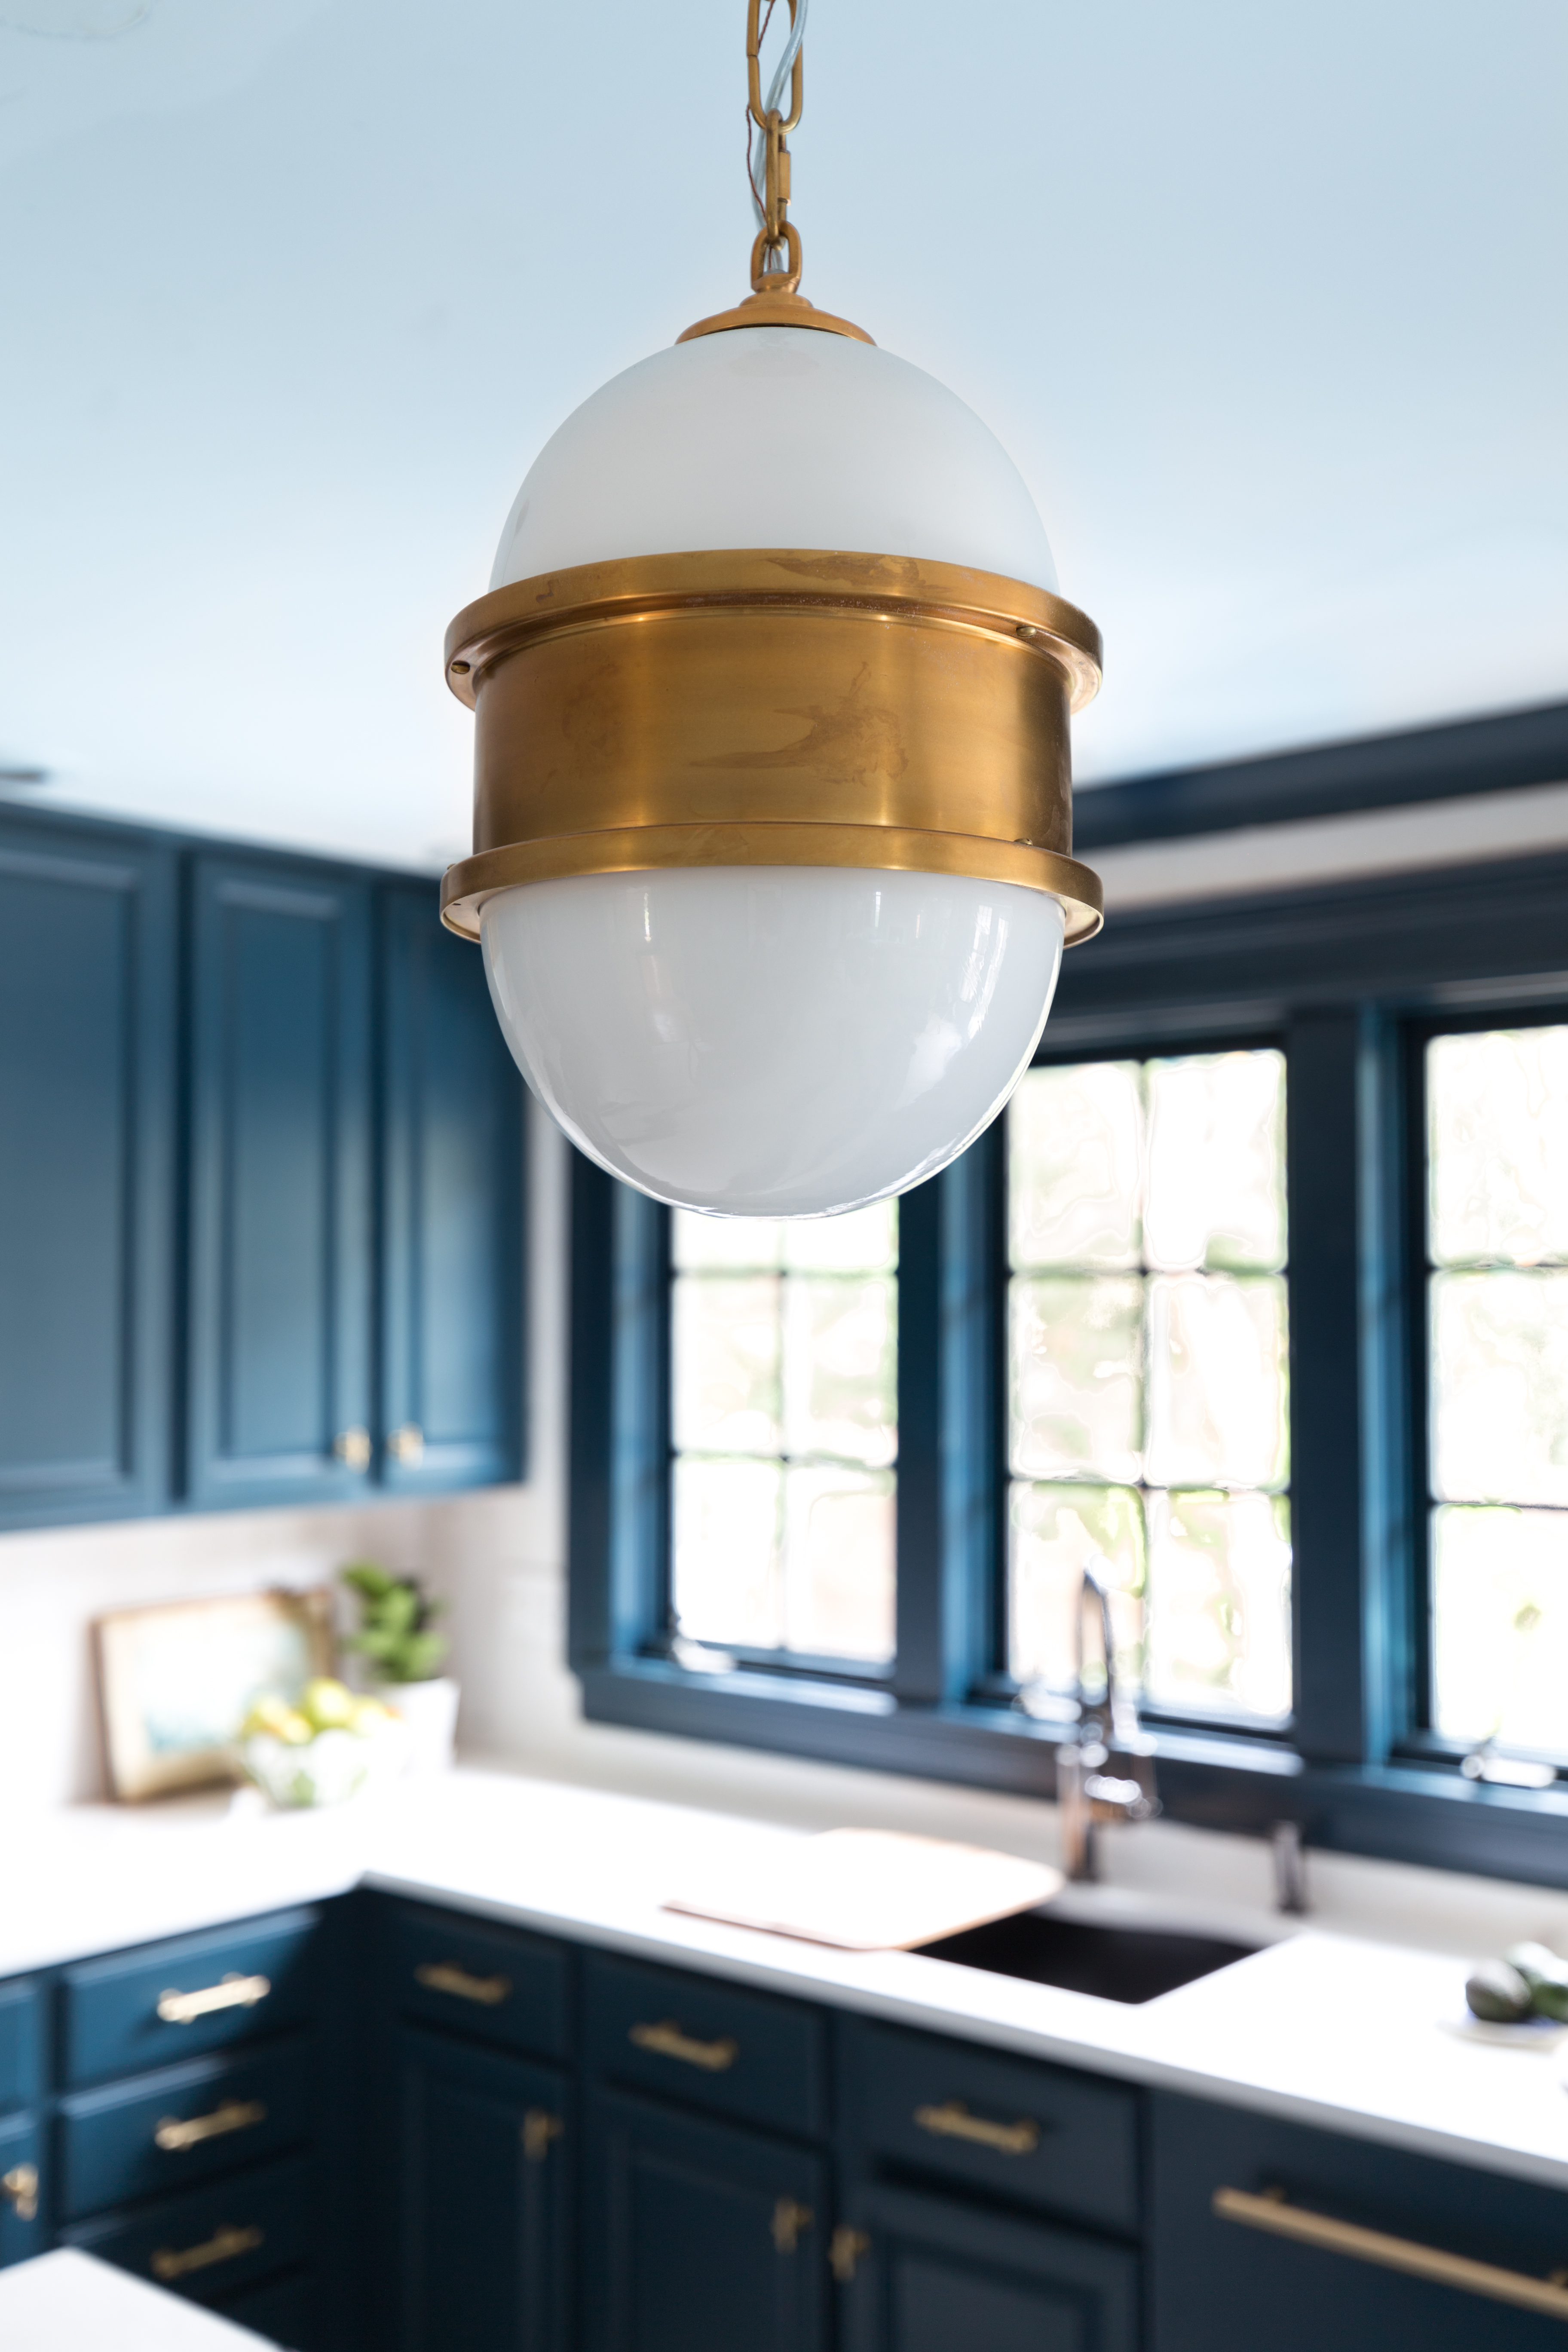 Wowzers! Check out this reveal from Jeweled Interiors Fall 2019 ORC, one room challenge. Broomley sconce, Corbett Lighting, hague blue cabinet, kitchen